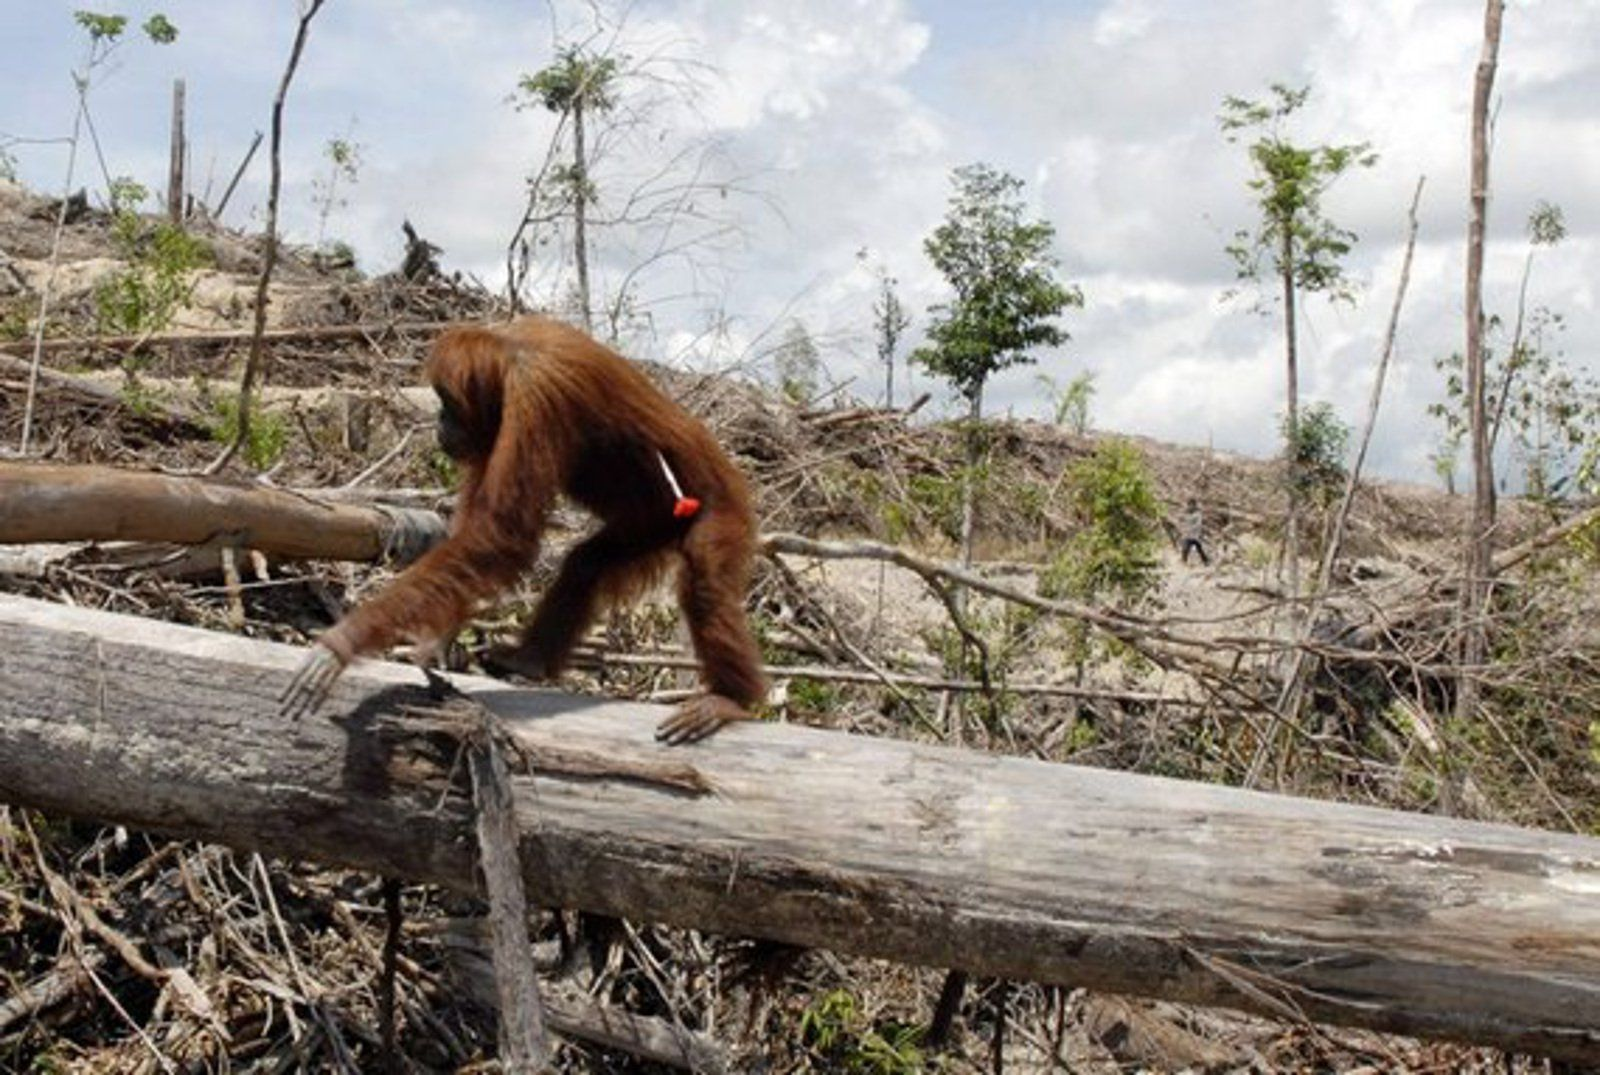 heartbreaking image shows real cost of cheap palm oil